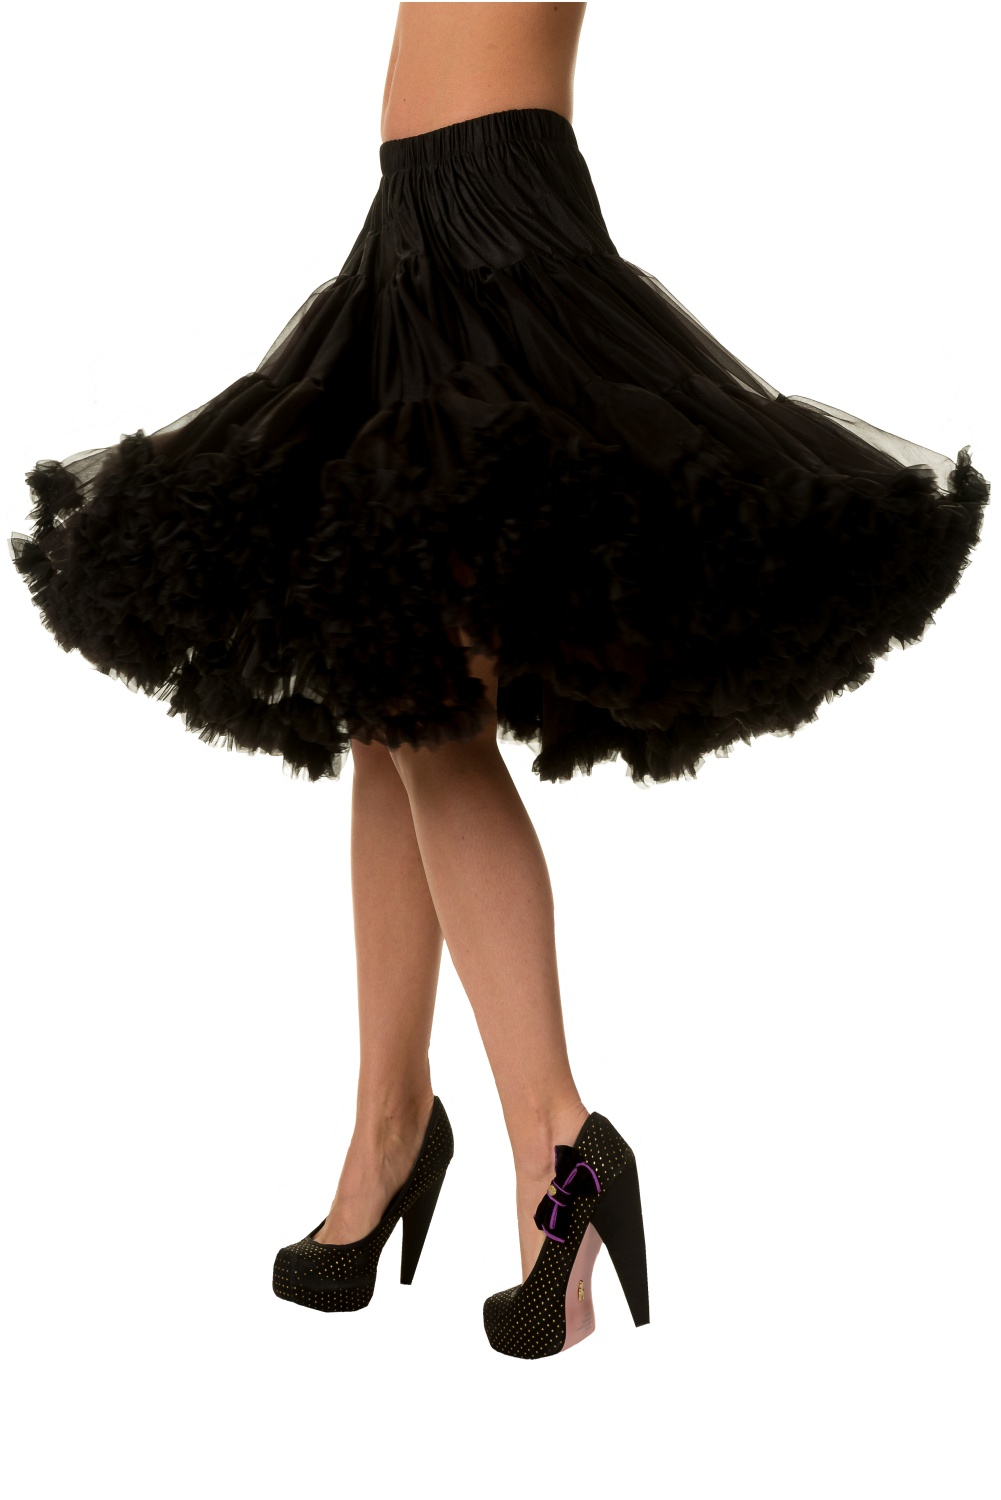 Banned Black Lifeforms 26 Inch Jive Petticoat